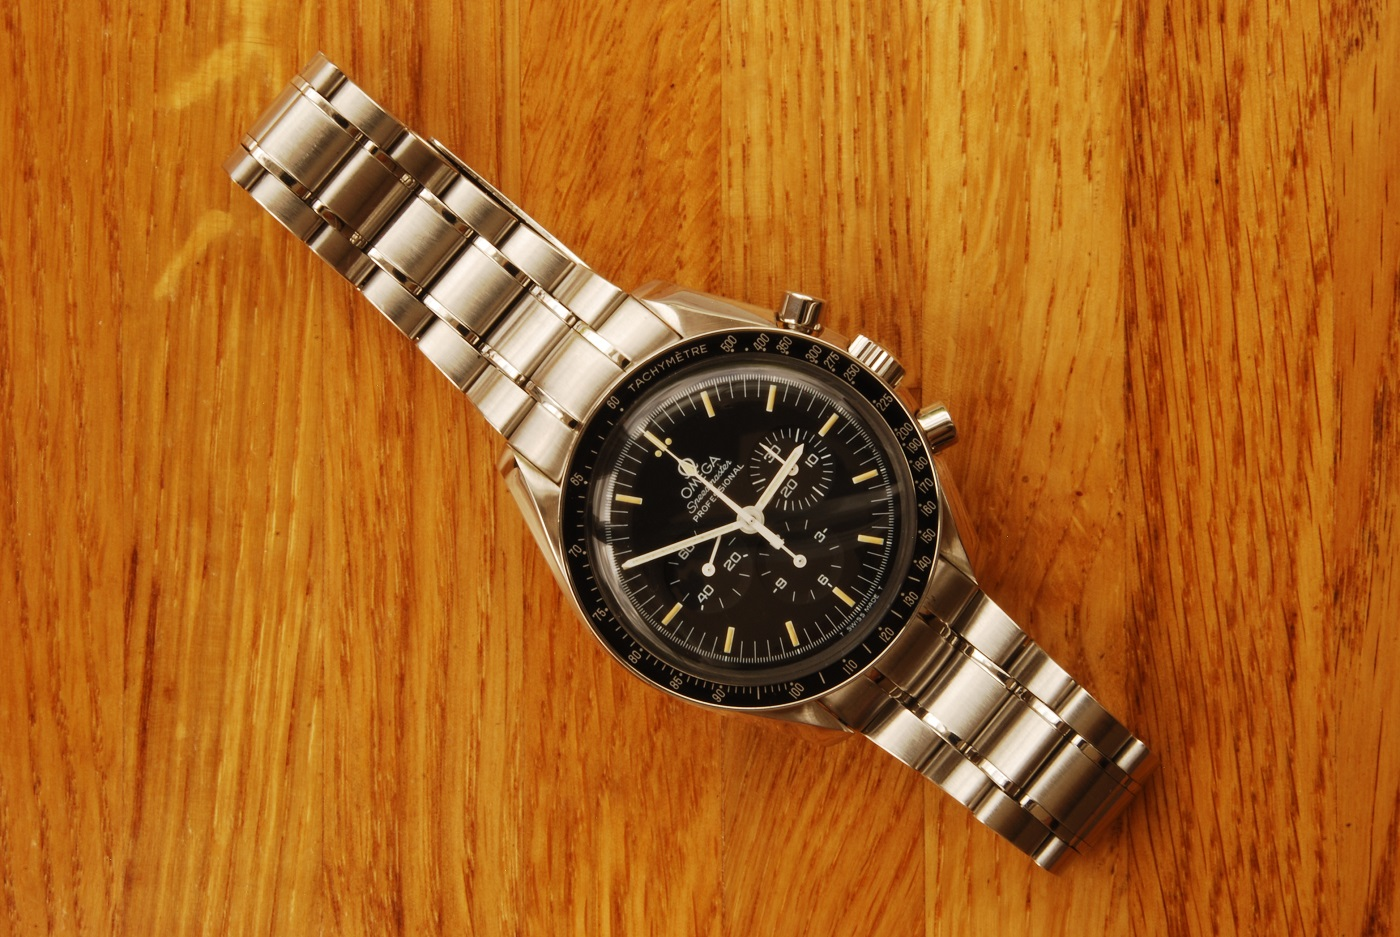 UK watchmaker showing service of Omega Speedmaster - finished watch